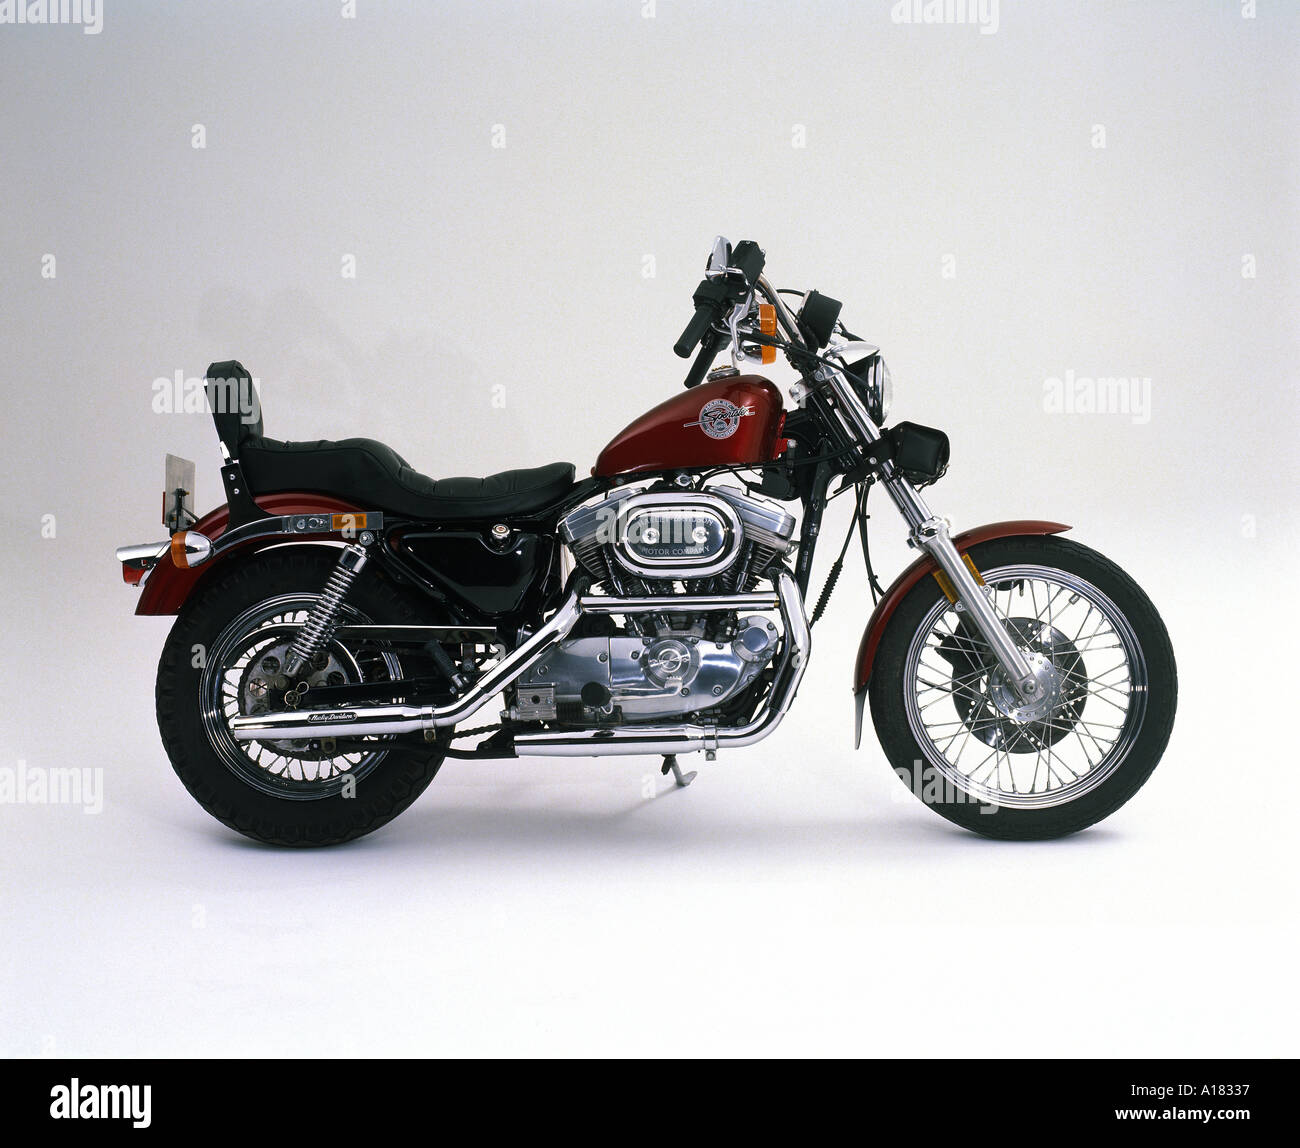 Harley Davidson Stock: 1989 Harley Davidson 883 Sportster Stock Photo: 99127